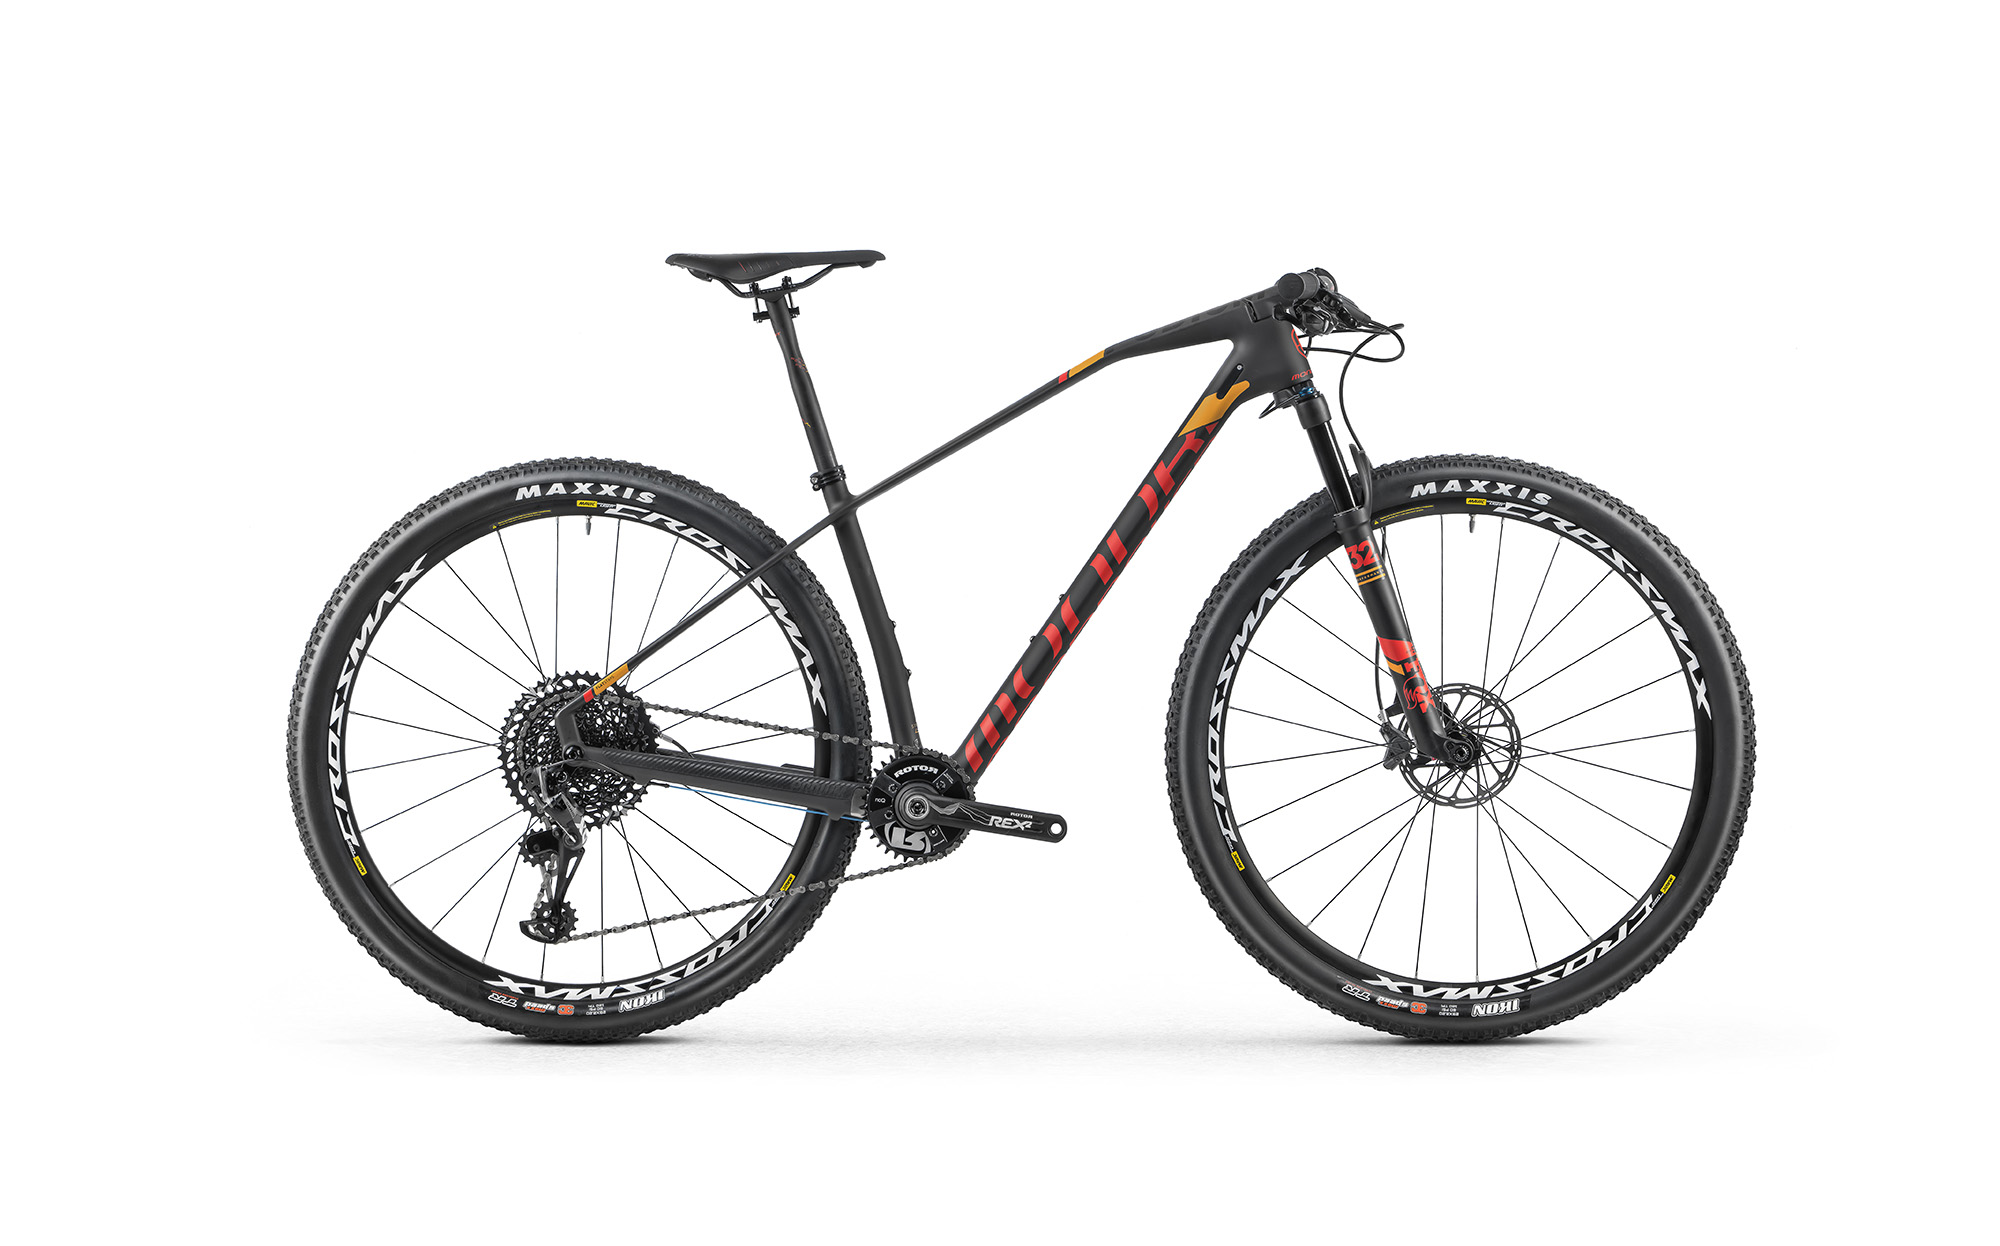 df1acf7effd 2018 Mondraker Podium Carbon R 29er Hardtail Cross Country Race Mountain  Bike. Return to Previous Page. lightbox